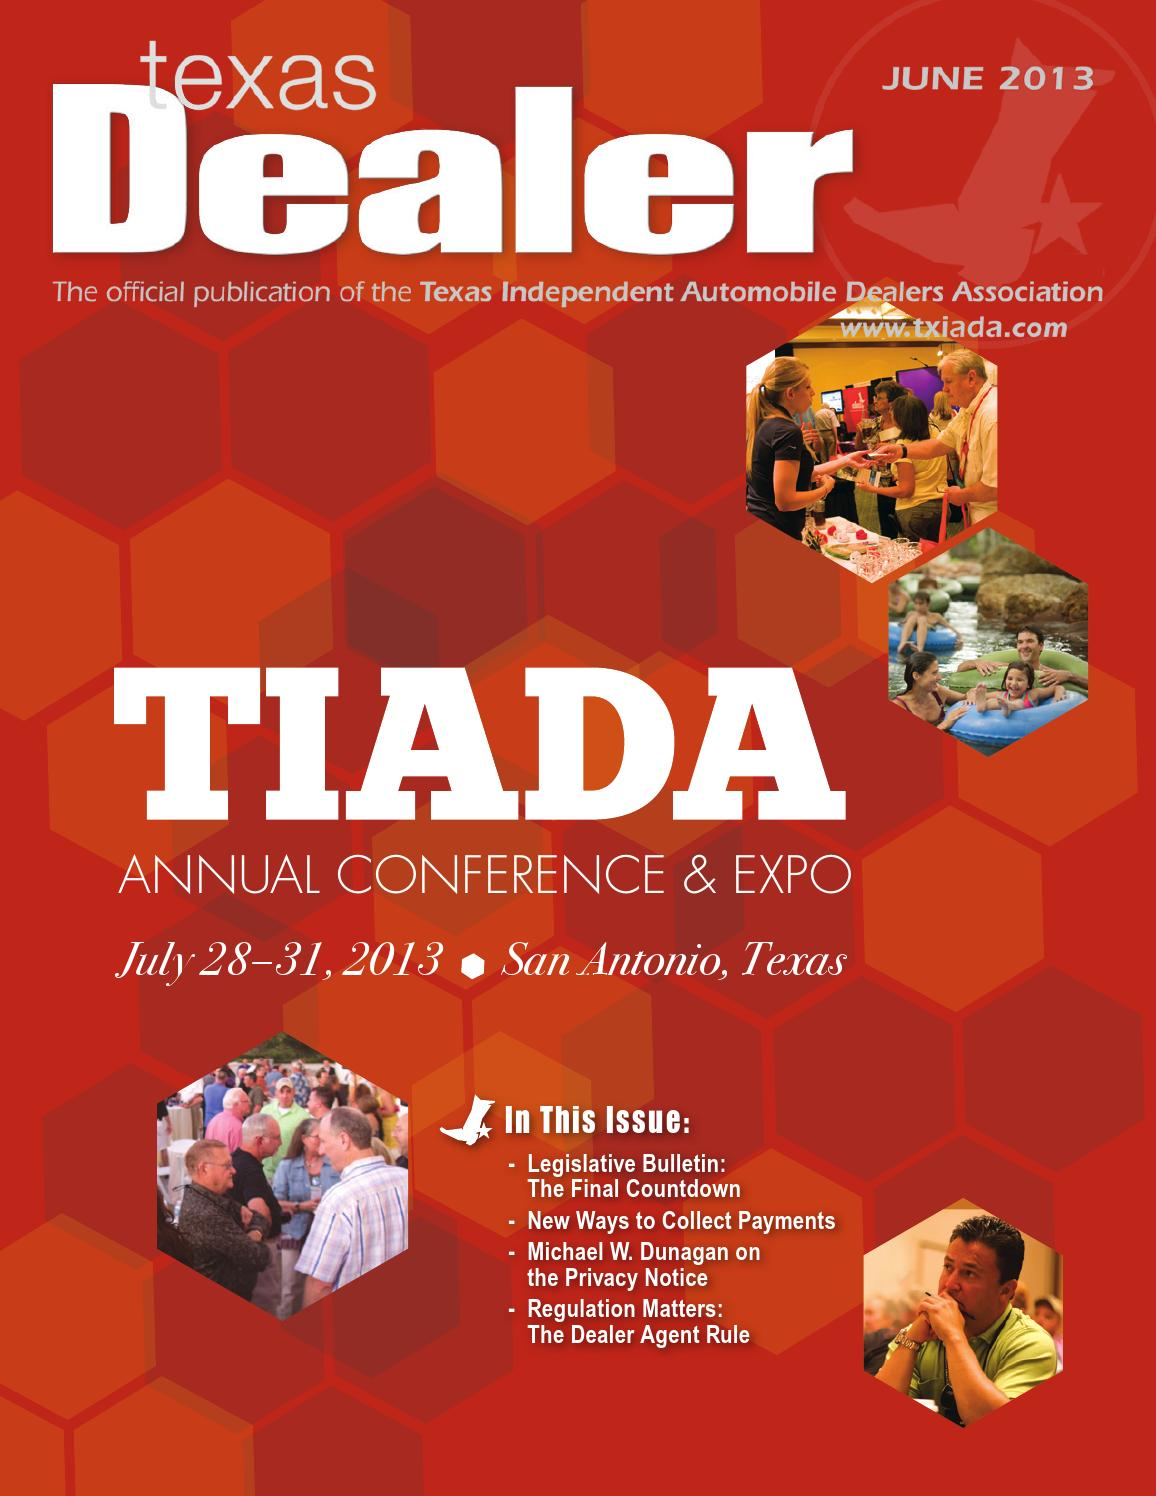 texas dealer 2013 by texas independent auto dealers texas dealer 2013 by texas independent auto dealers association issuu